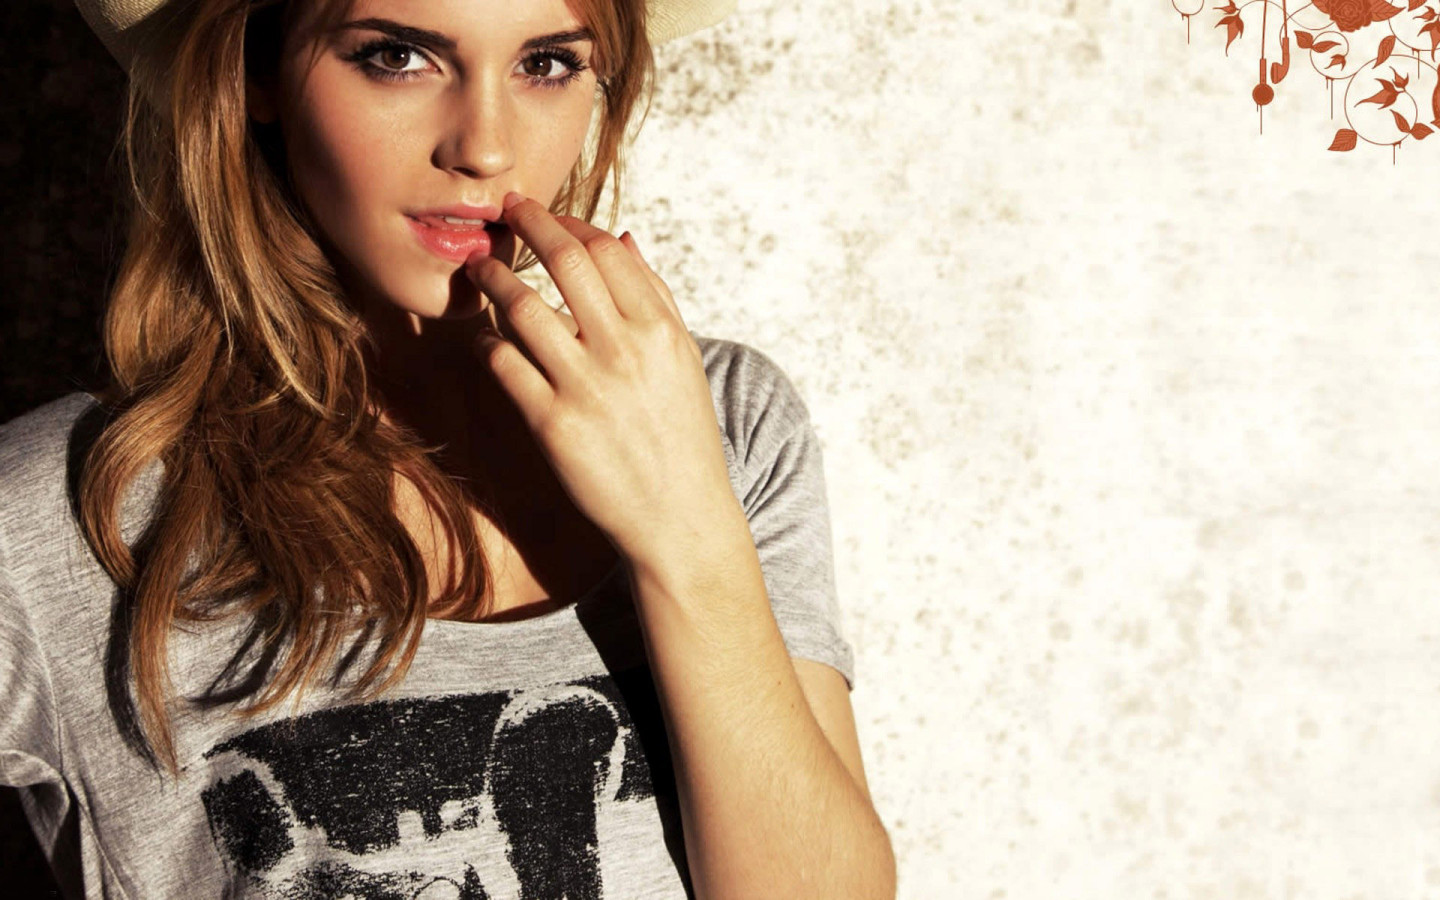 Emma Watson New Desktop Wallpapers 1301